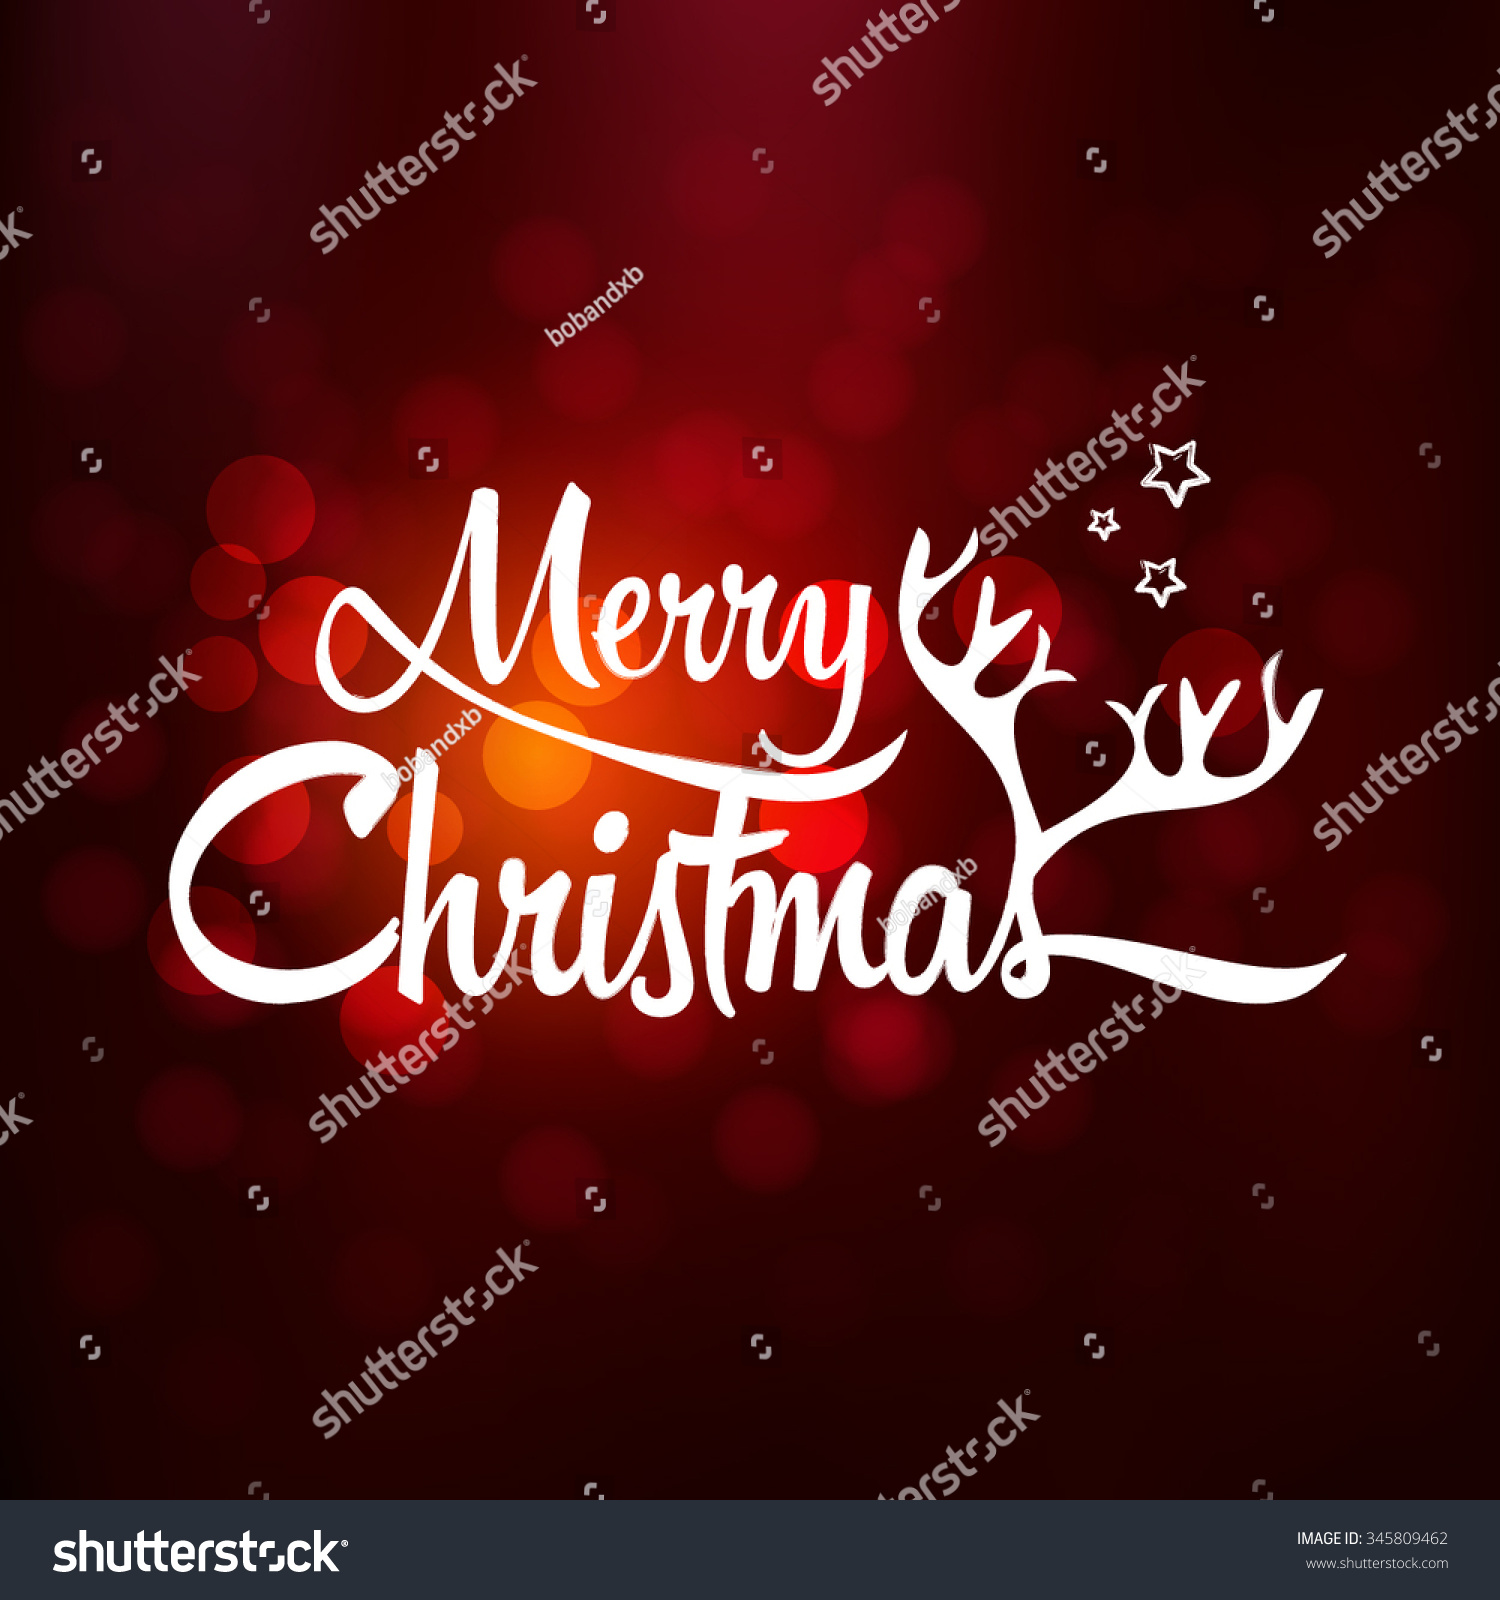 Merry Christmas Christmas Greeting Card Merry Stock Vector (Royalty ...